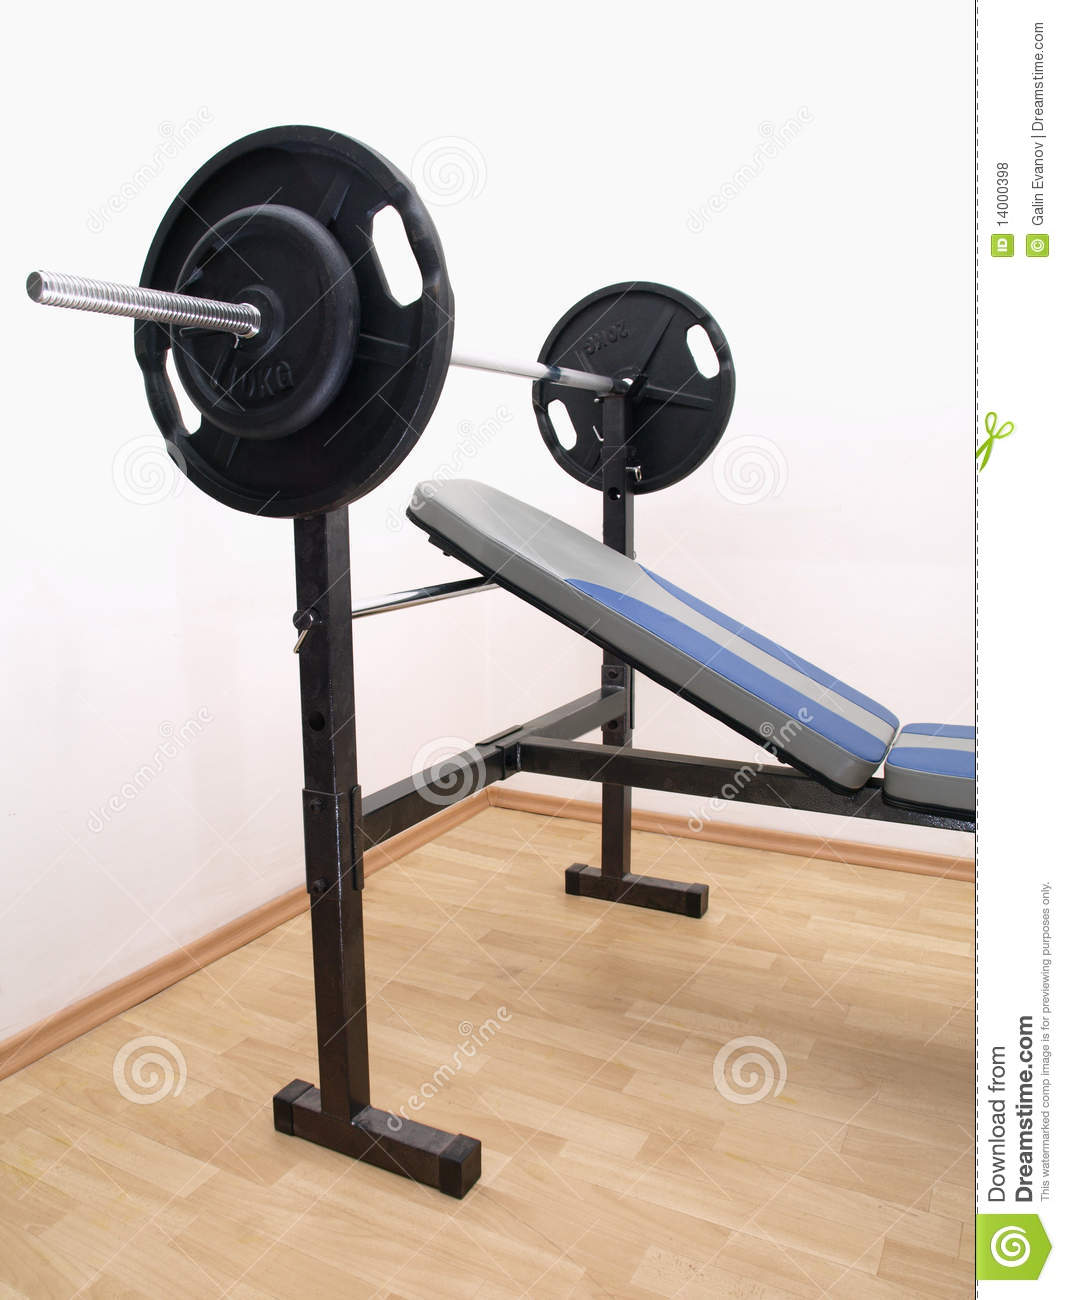 Bench Press With Weights Royalty Free Stock Photos Image 14000398